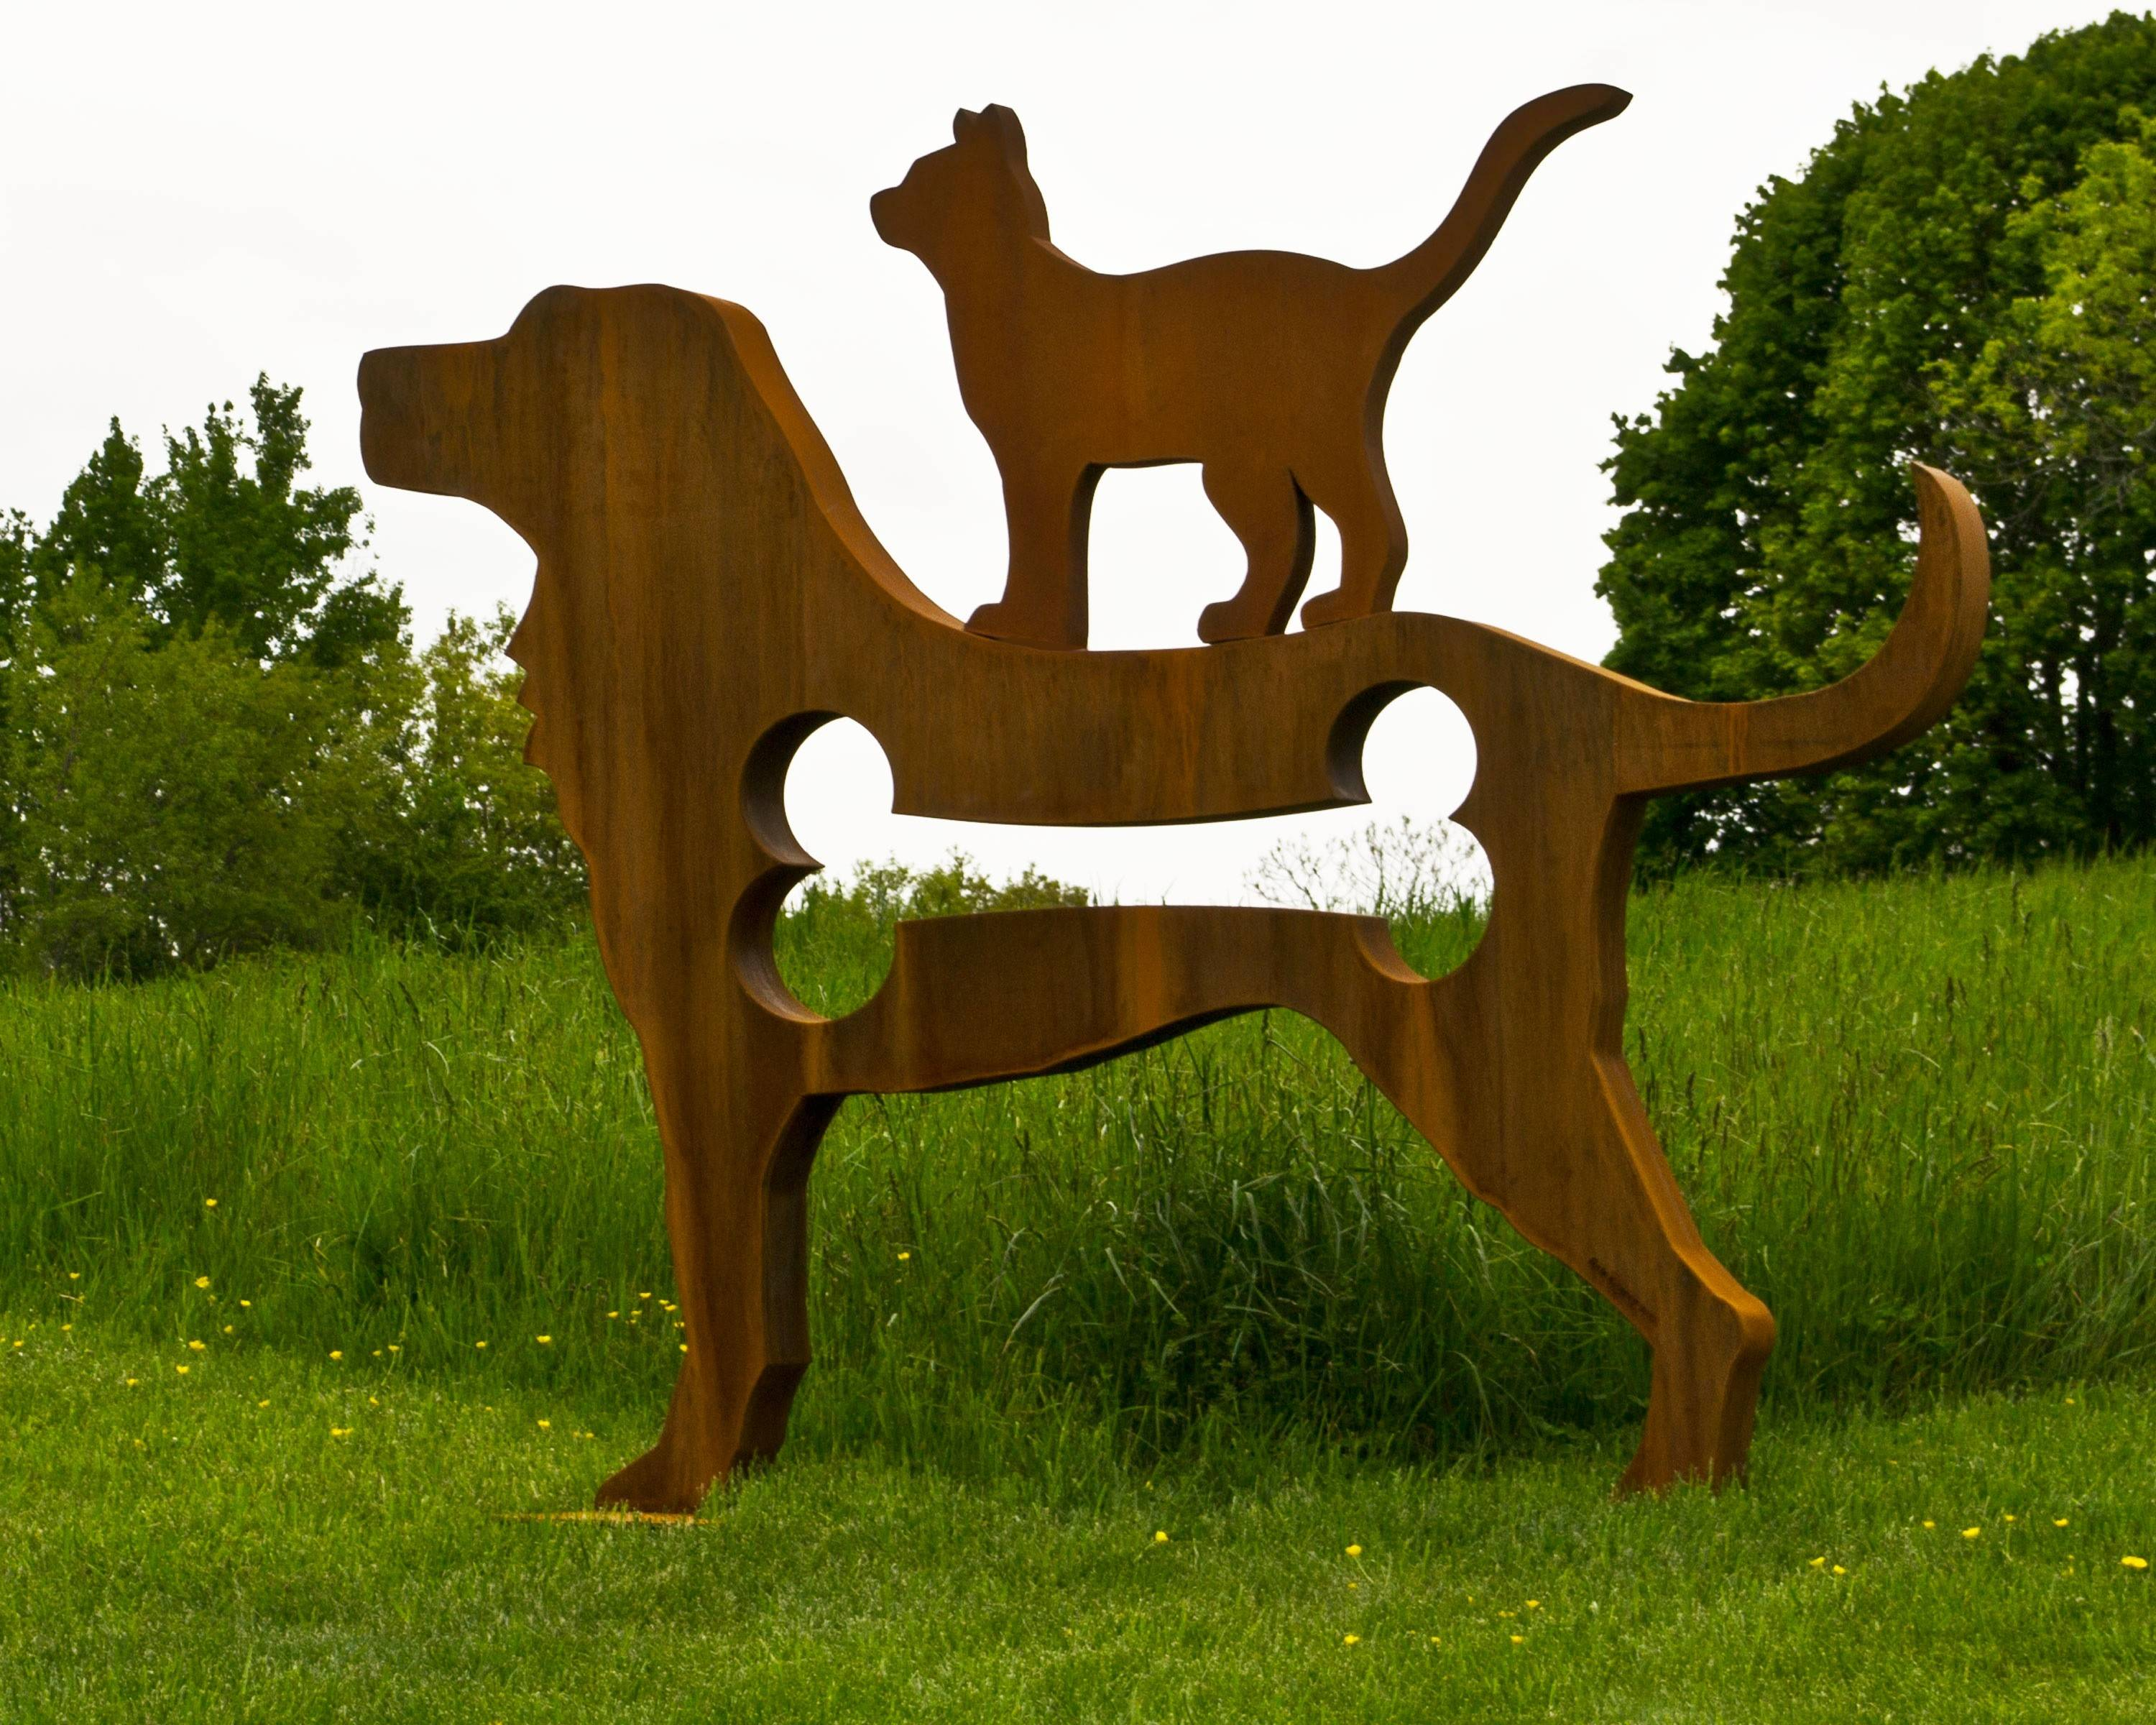 Century Walk Corp. is teaming with the Naperville Area Humane Society to install this sculpture of a cat and dog by artist Dale Rogers east of Centennial Beach along the Riverwalk. A dedication ceremony is scheduled for 1 p.m. Sunday, Aug. 17.